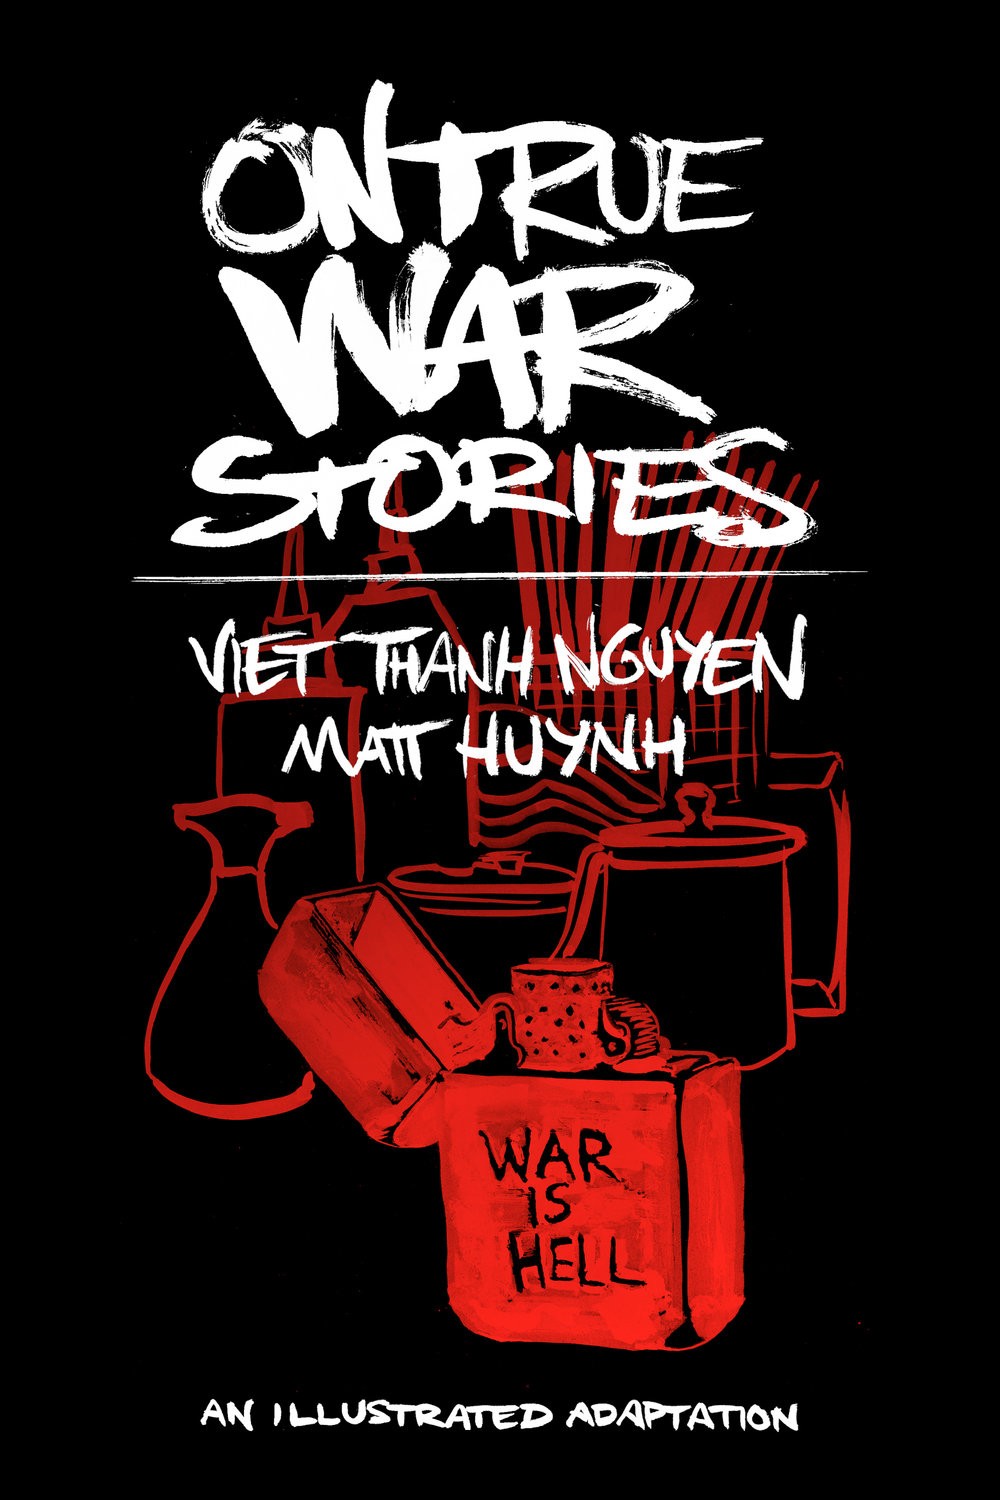 title on true war stories.jpg